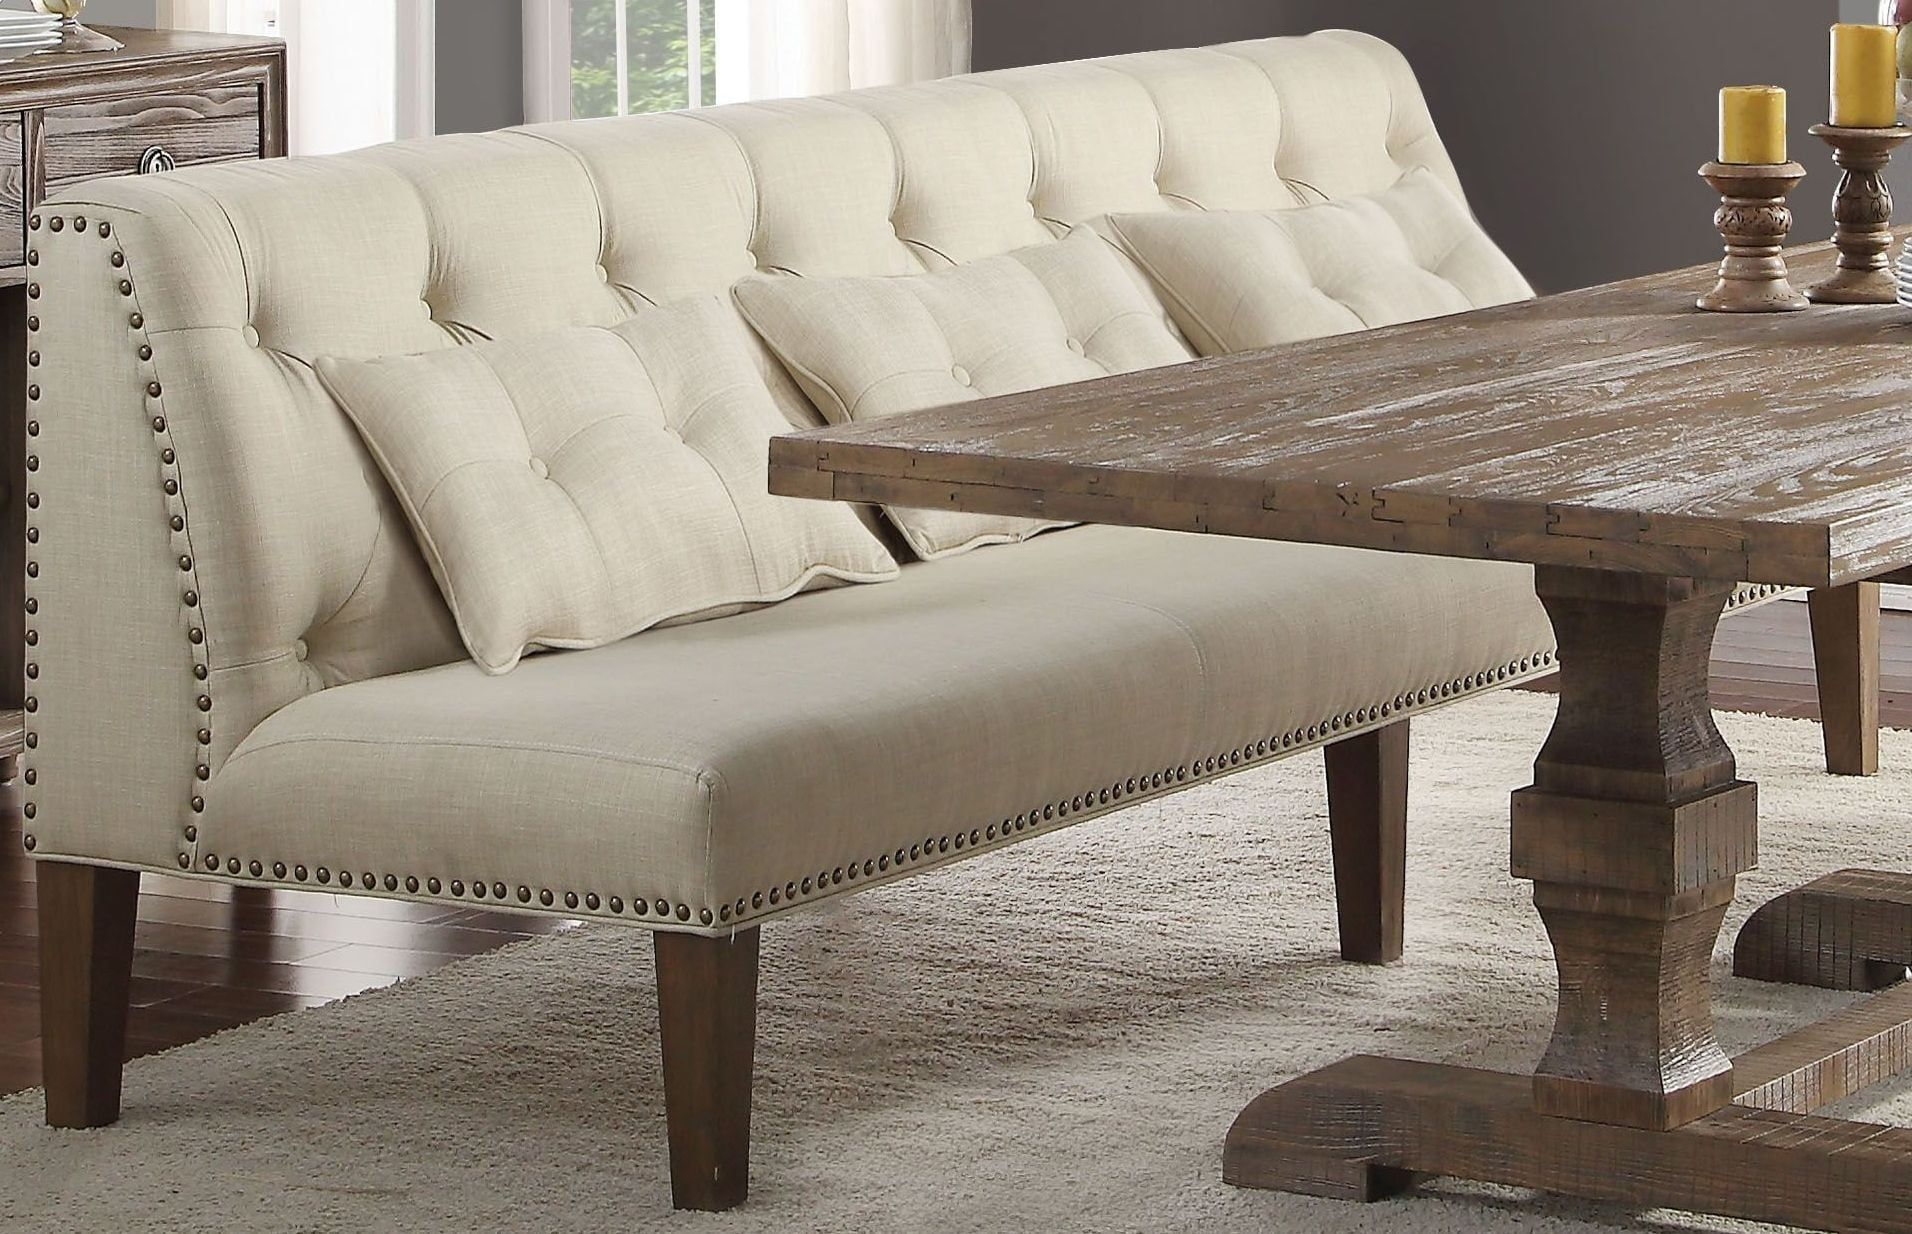 Inverness Parker And Salvage Oak Banquette Bench